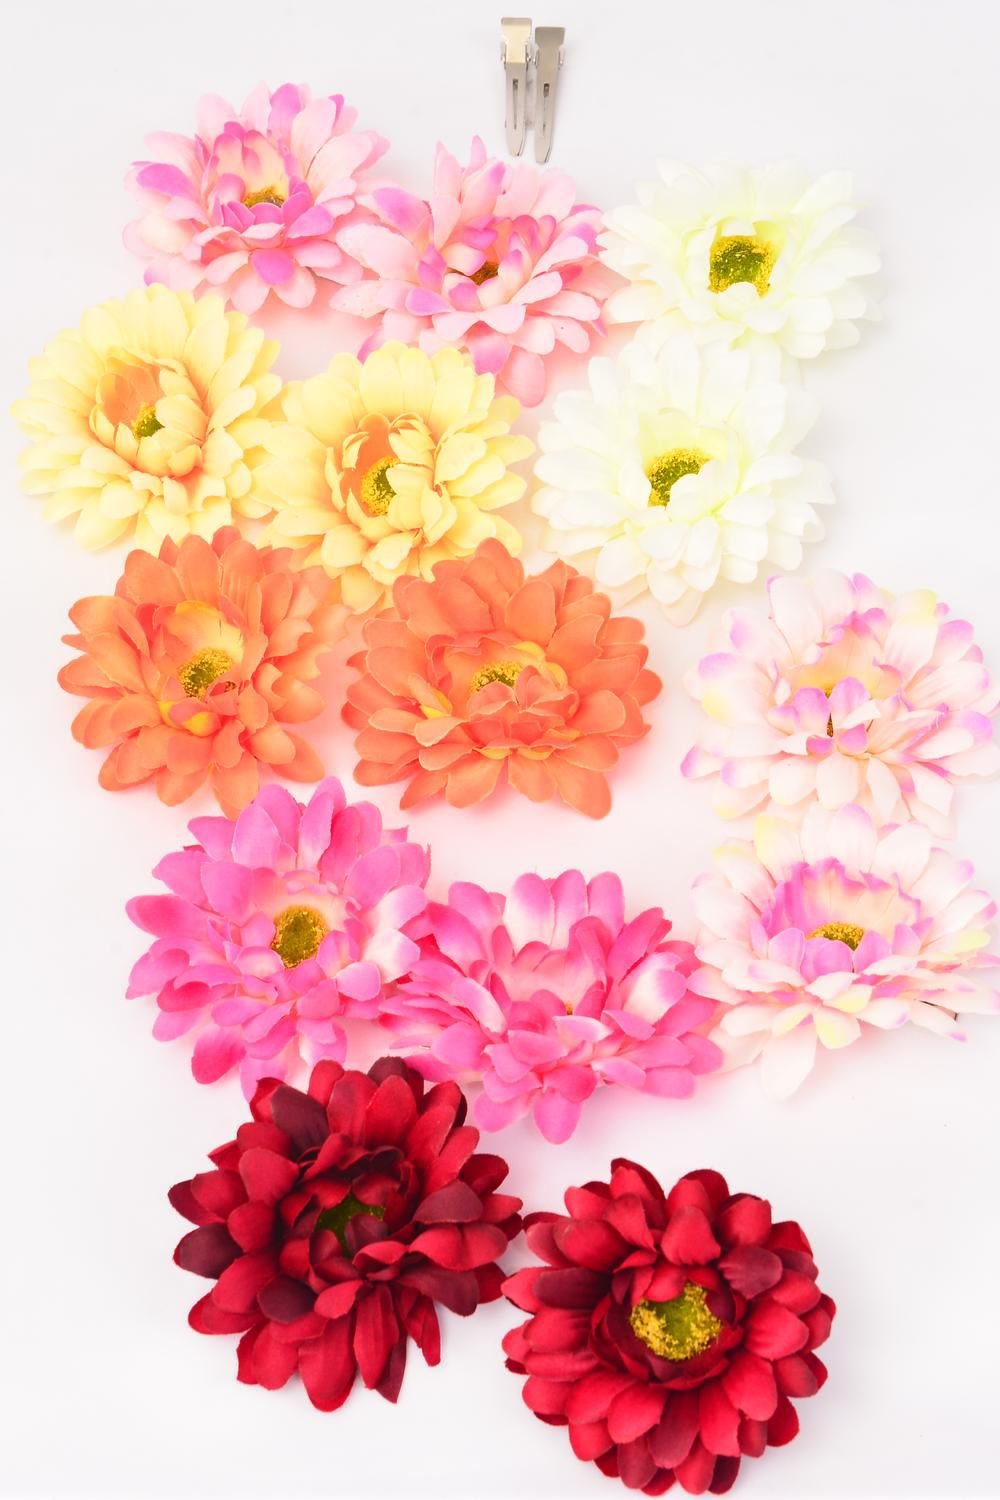 "Flowers 24 pcs Alligator Clip Flowers Life Like/DZ Size-2.75"" Wide,2 Fuchsia,2 Hot Pink,2 Beige,2 Orange,2 Yellow,1 Red,1 Pink,7 Color Asst"